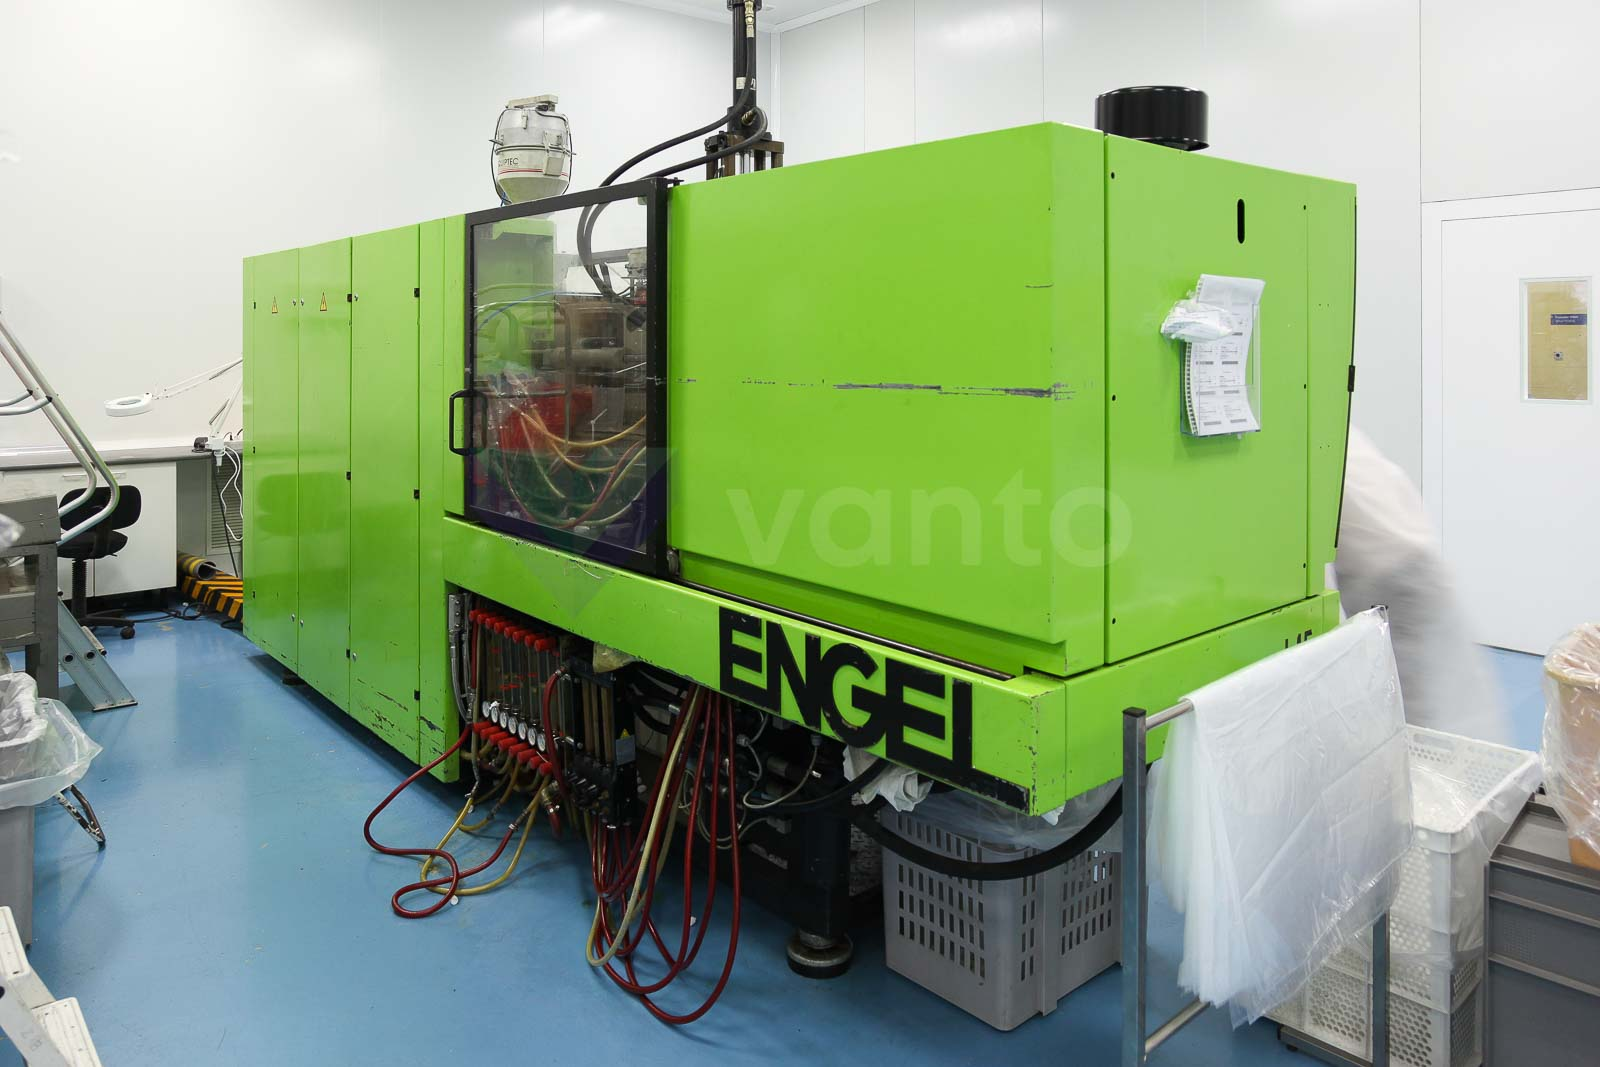 ENGEL ES 500 / 90 HLST 110t injection molding machine (1997) id3449